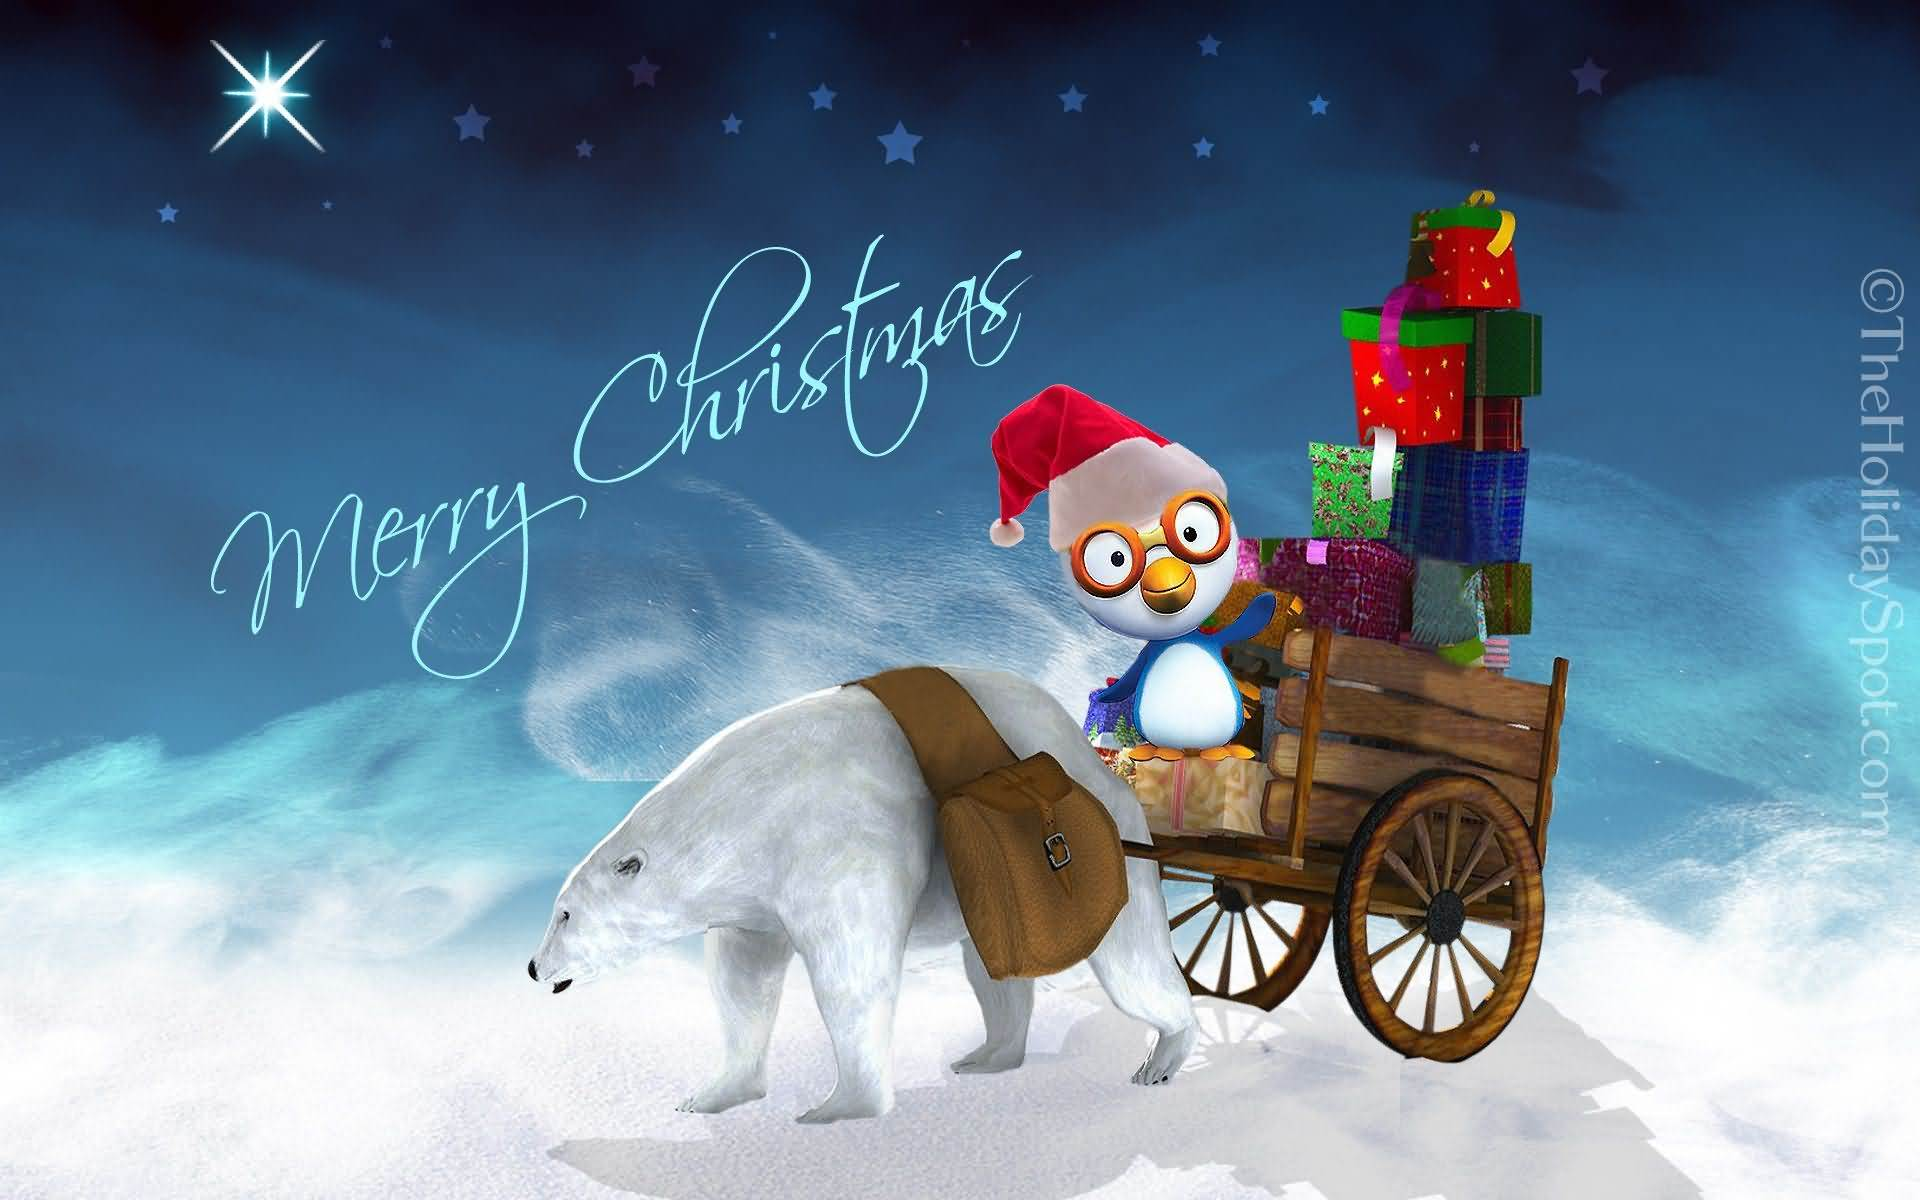 Cute Merry Christmas Greetings Wallpaper Image